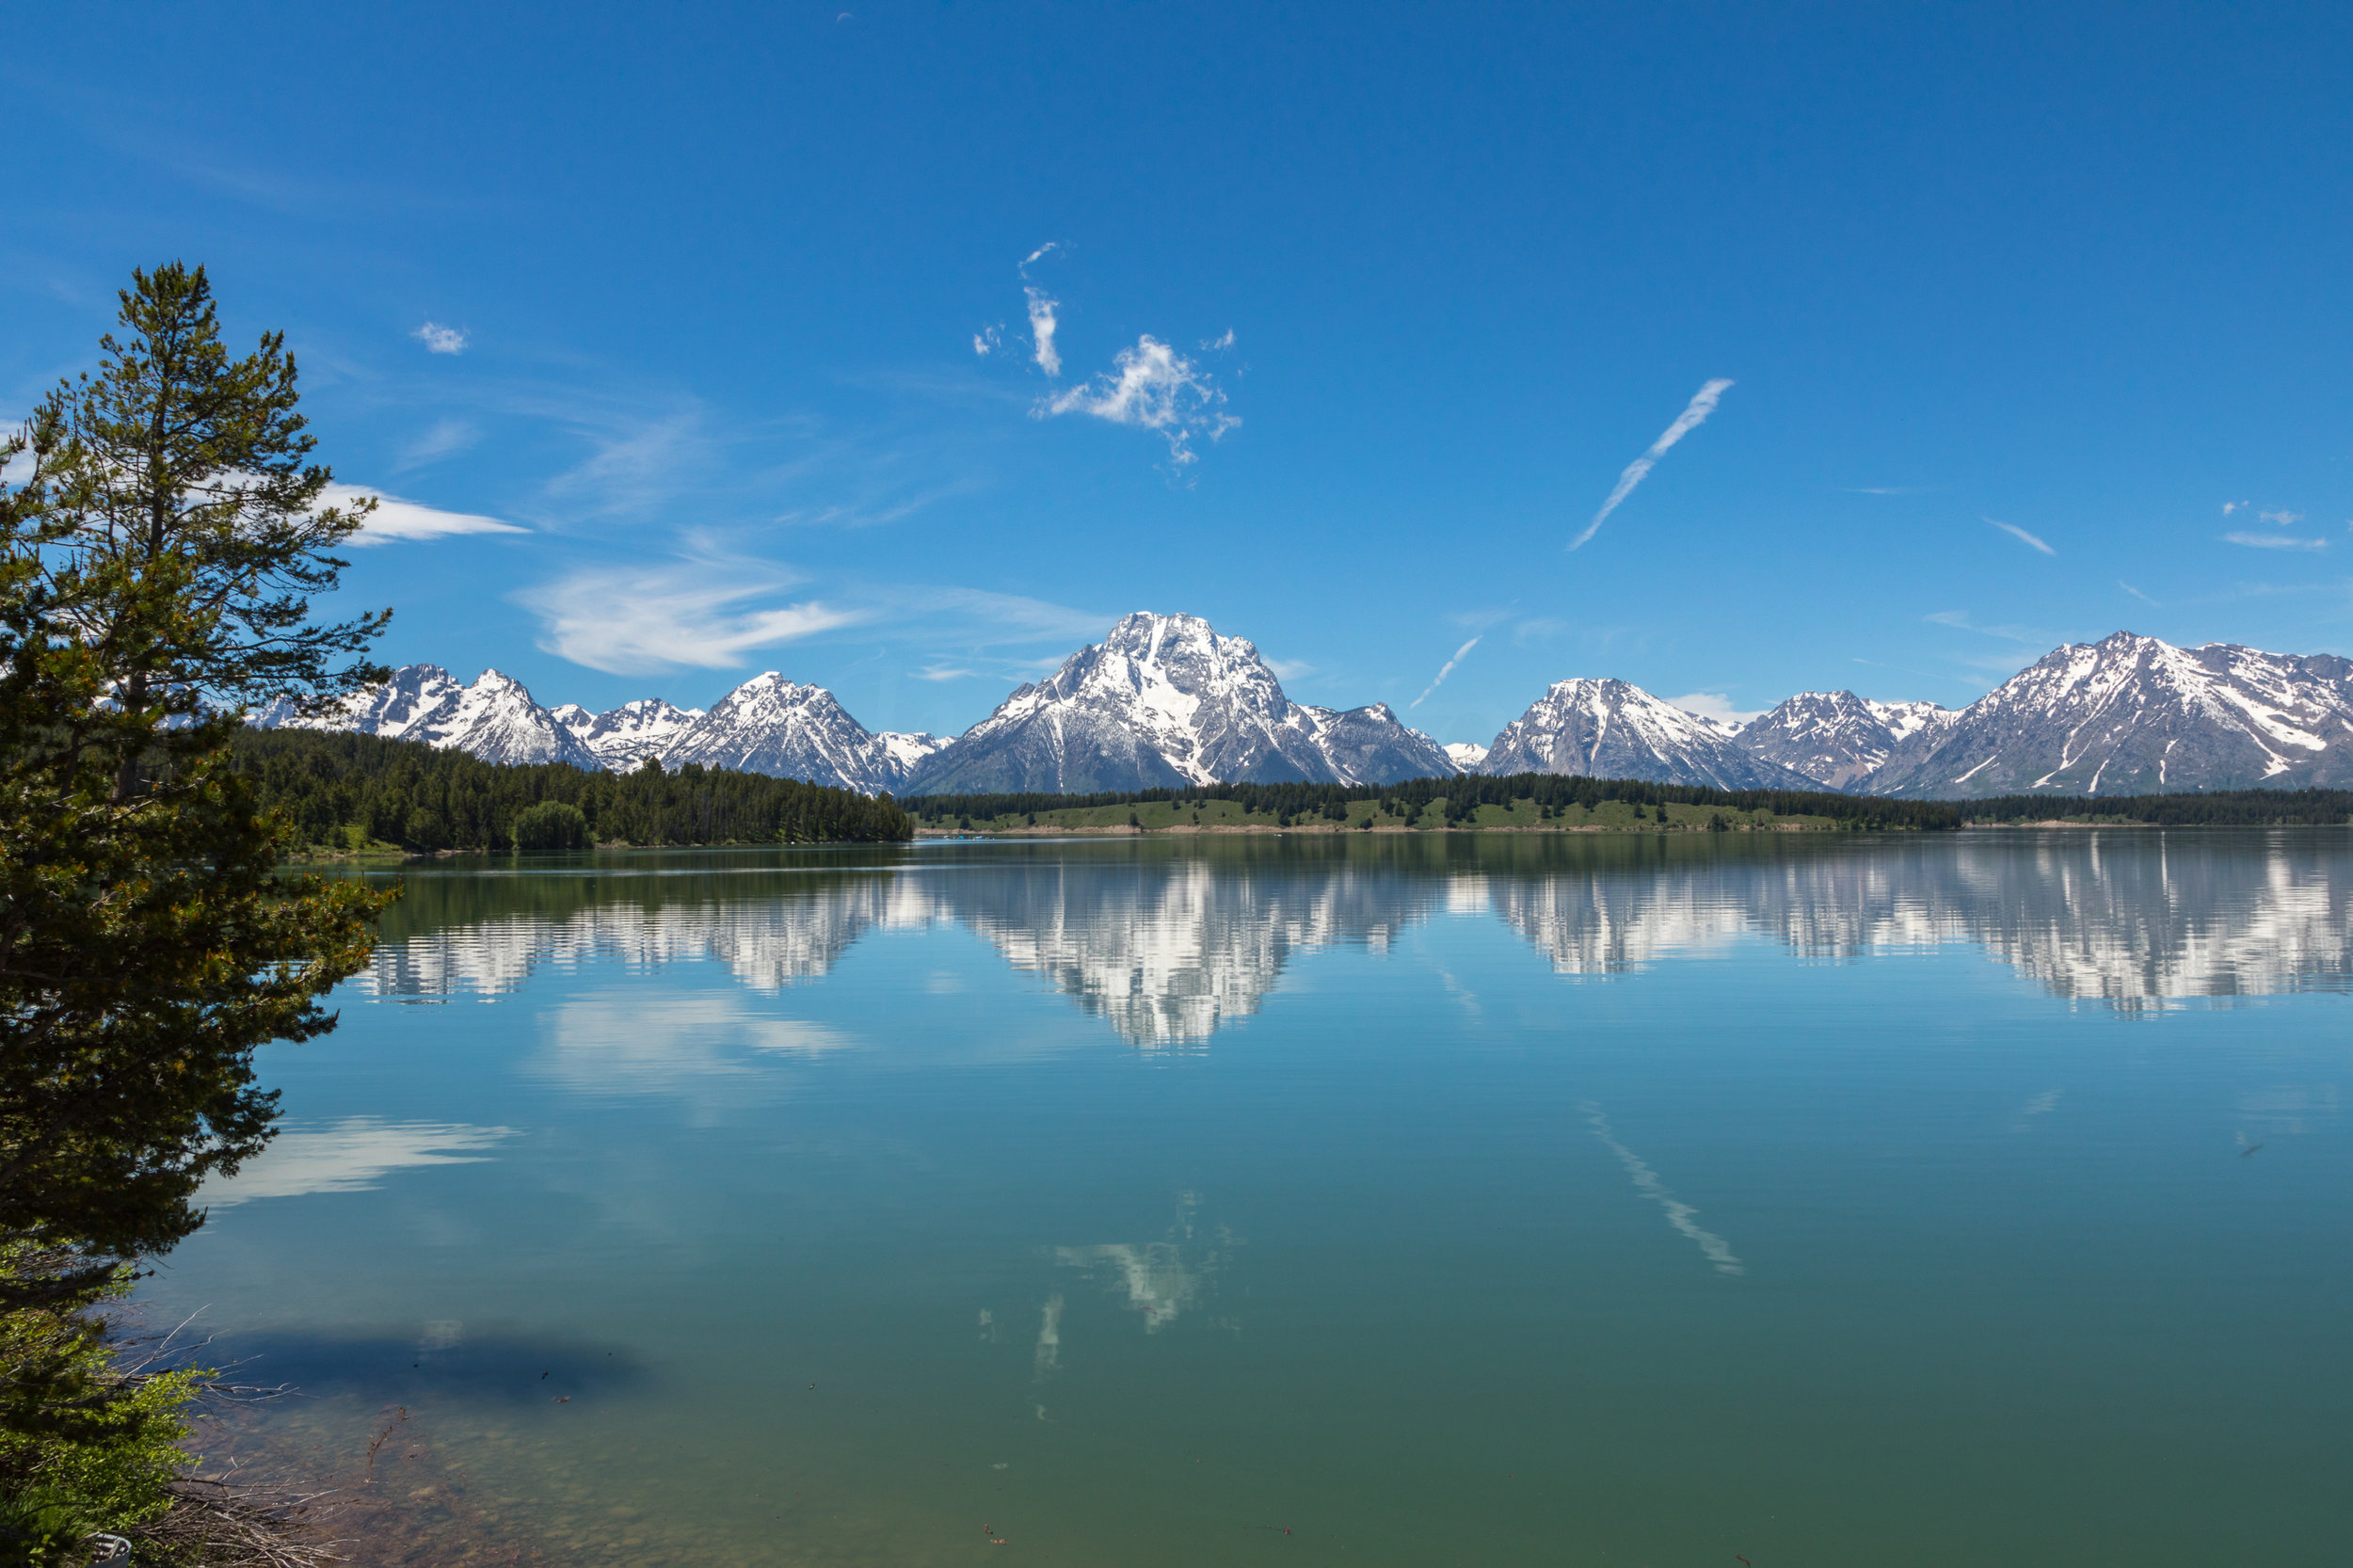 Reflection of Mount Moran in Jackson Lake, Image # 2502